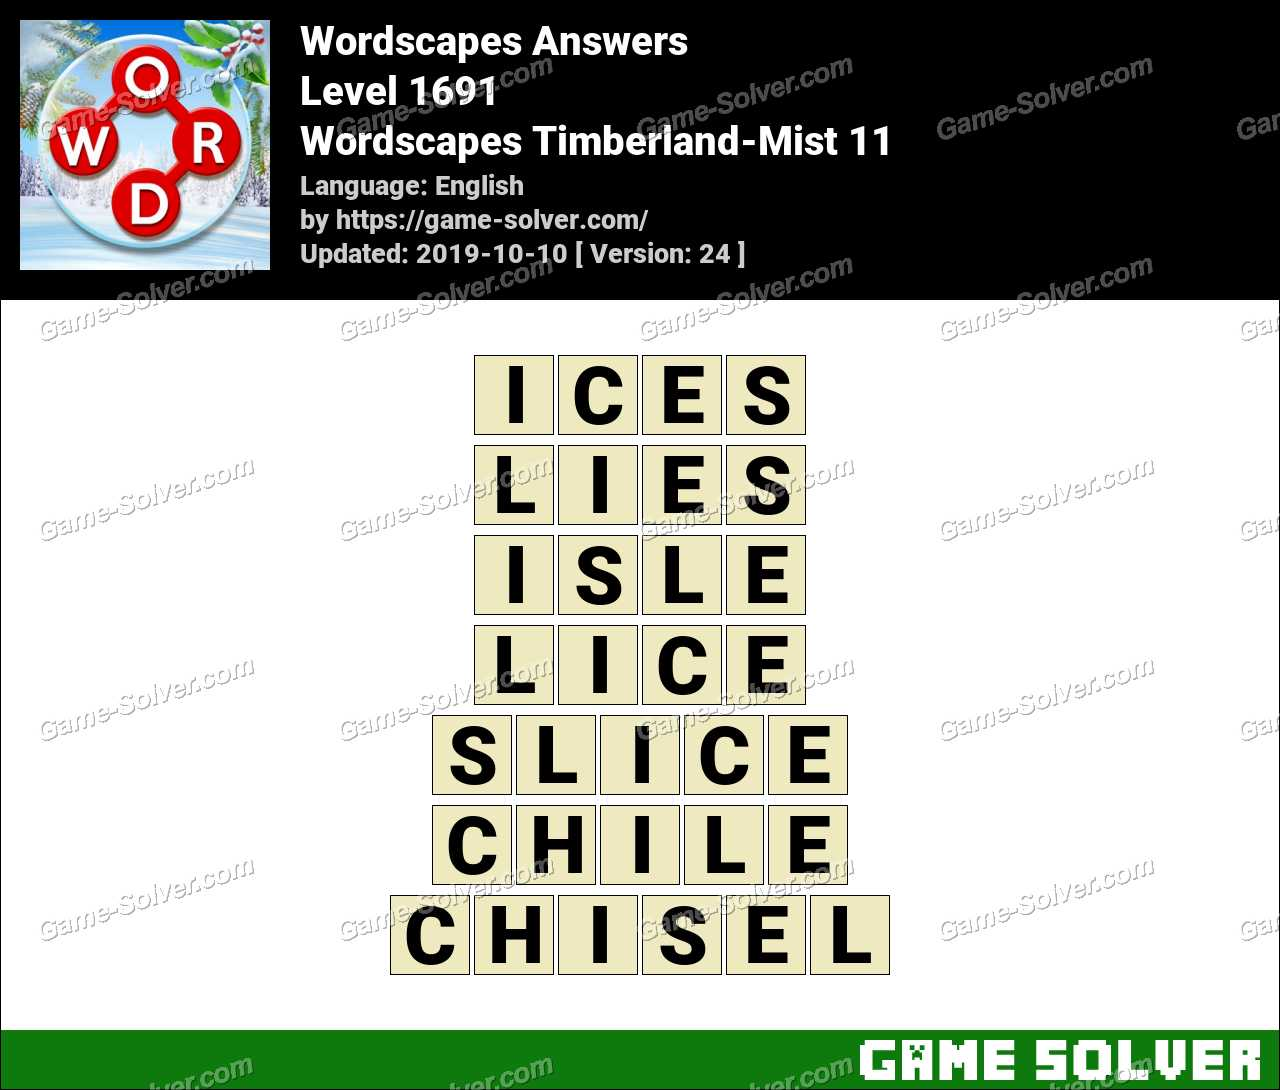 Wordscapes Timberland-Mist 11 Answers